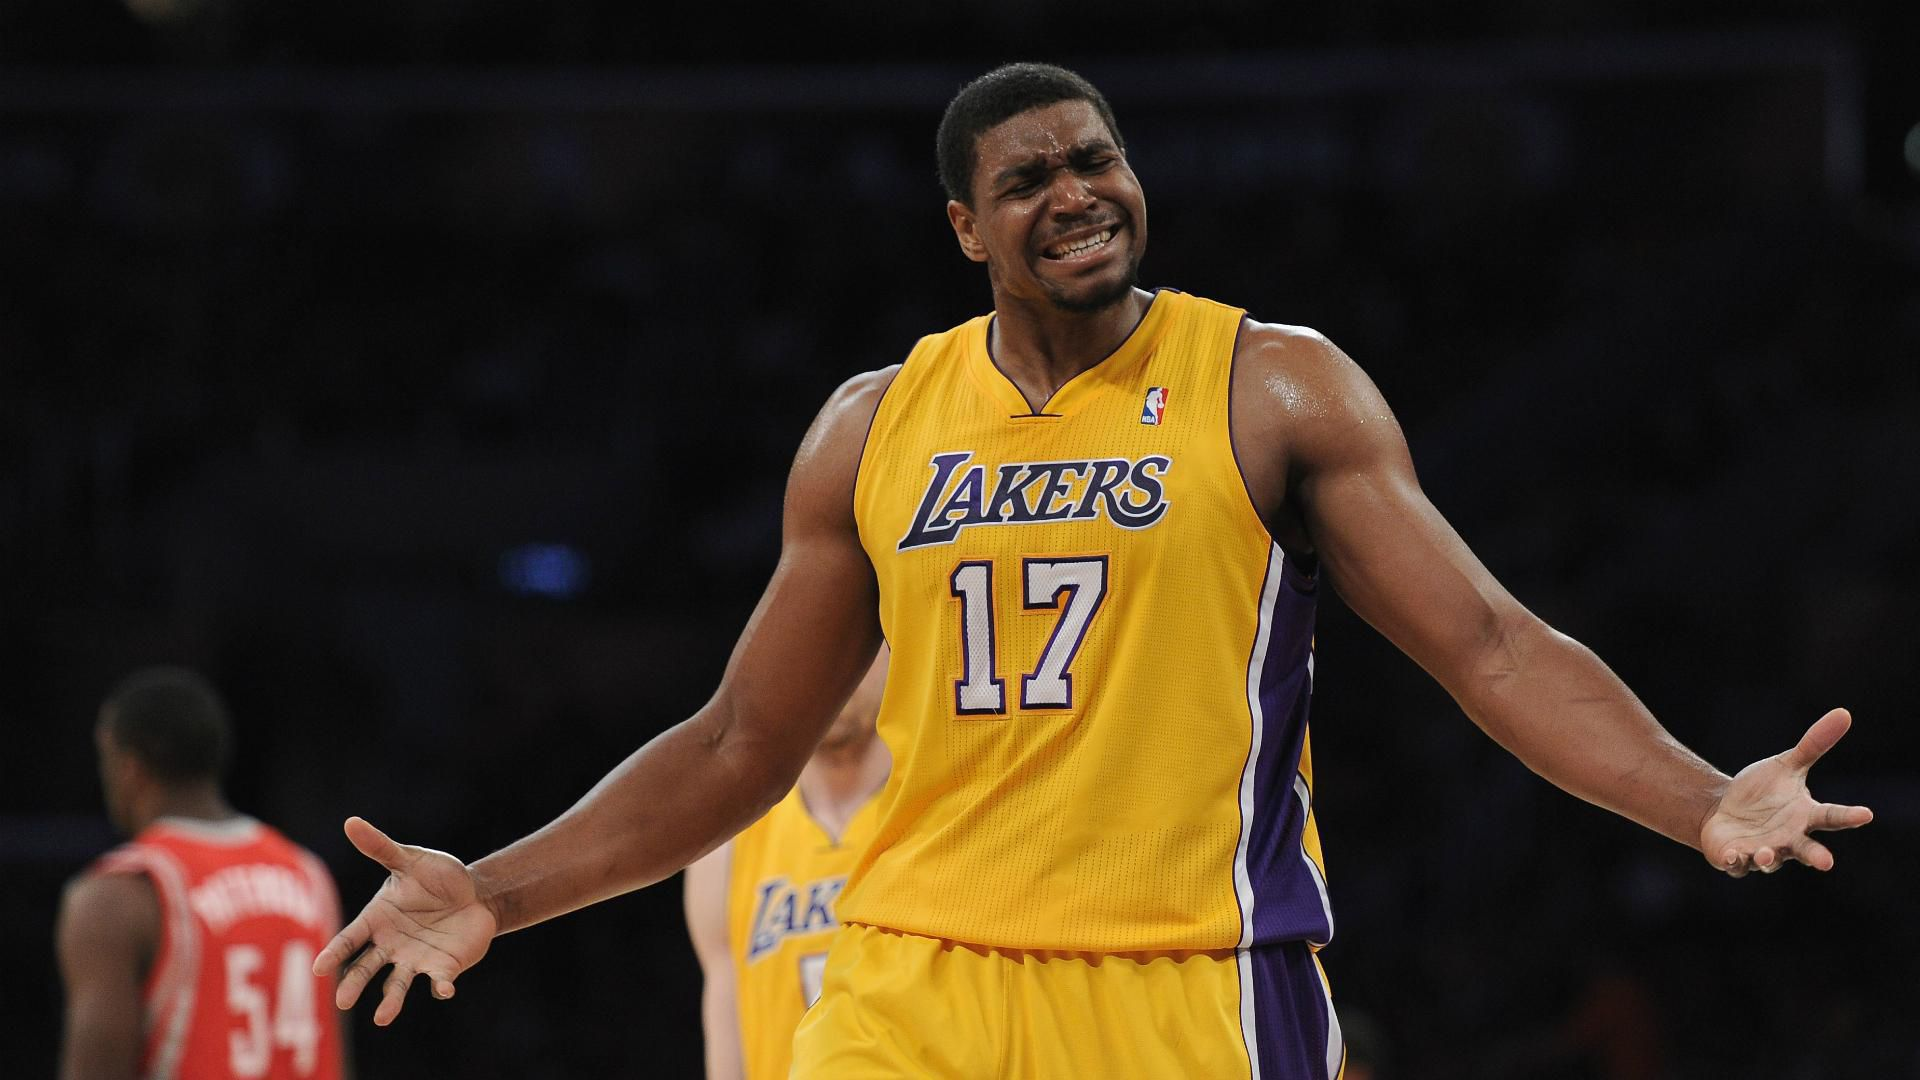 Andrew Bynum Pictures